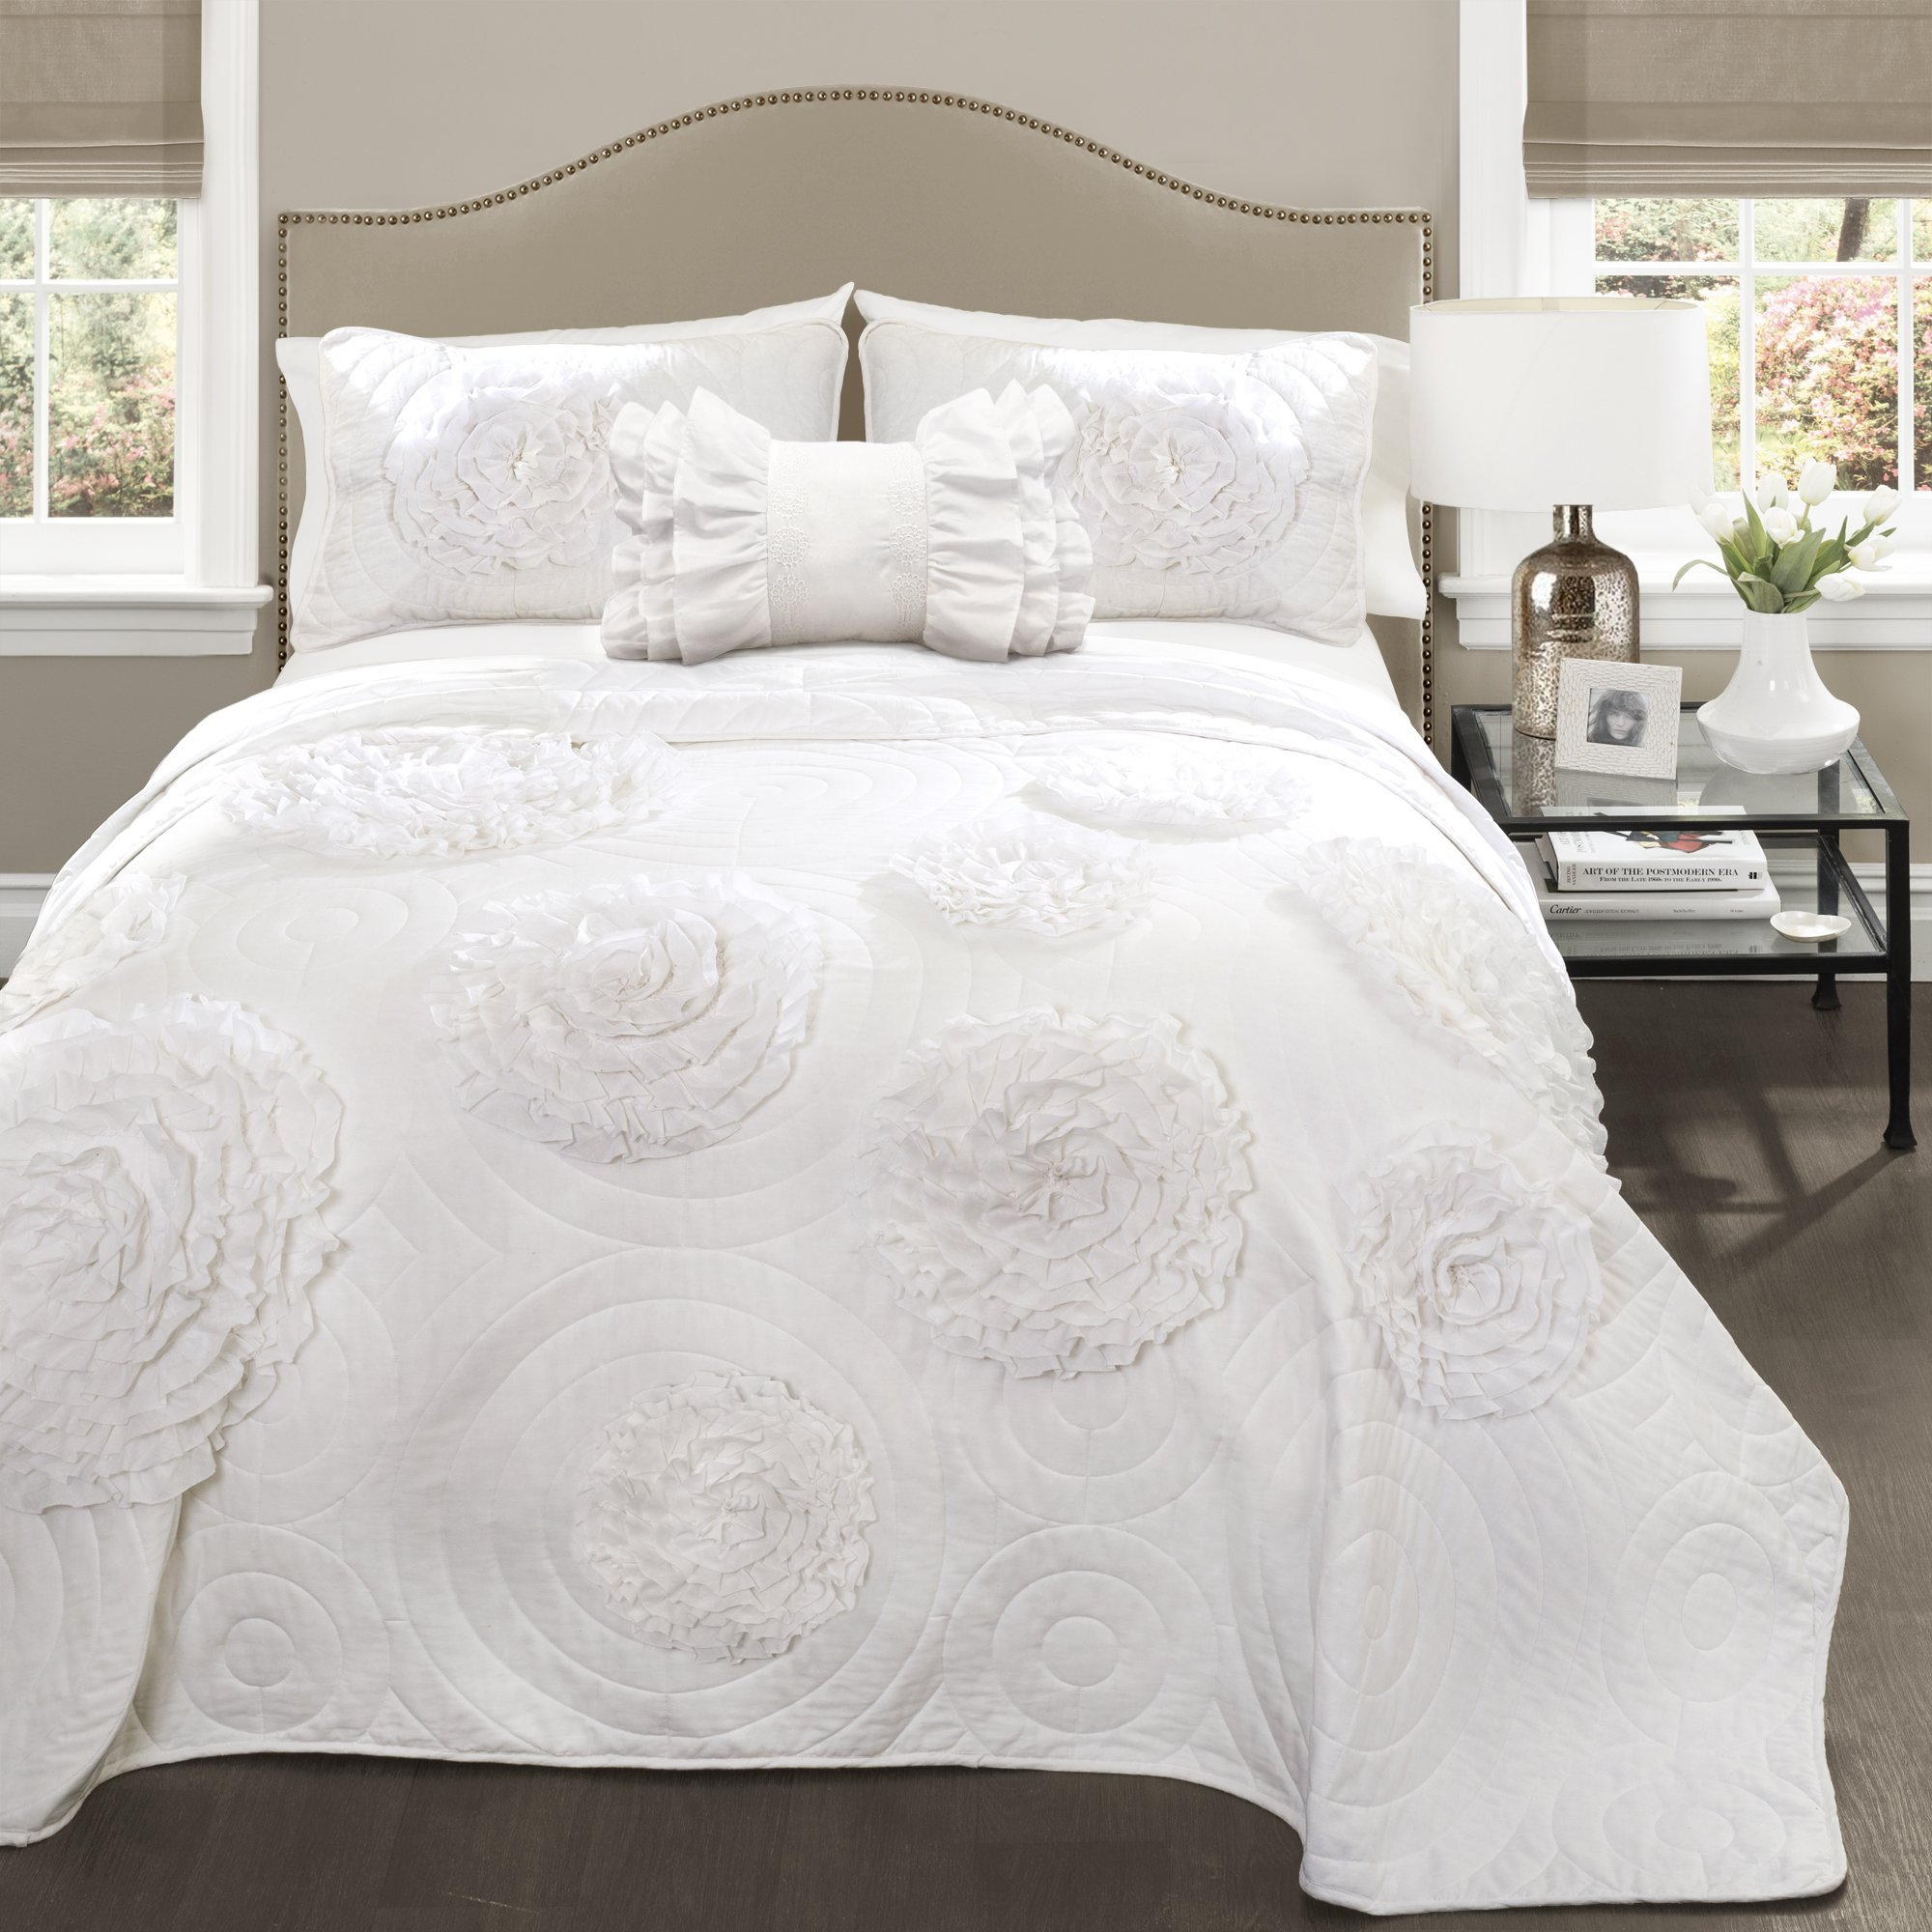 Lush Decor 16T000090 4 Piece Fiorella Quilt White Set, Full/Queen, White